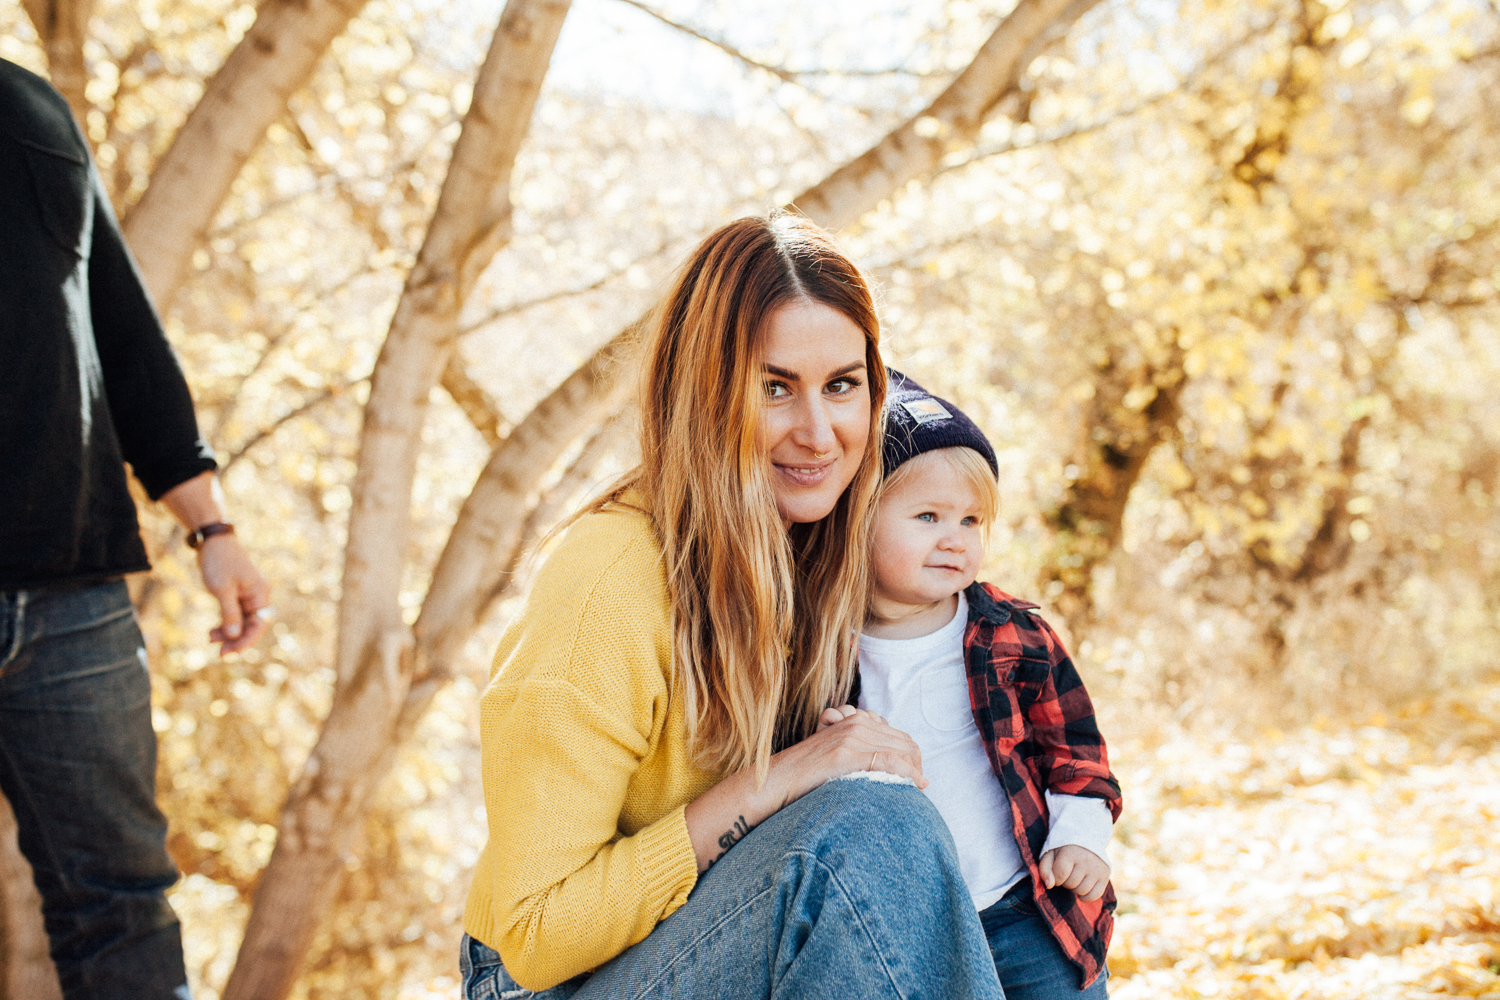 clean-and-natural-photo-of-mother-and-son-in-fall-leaves-with-jen-fairchild-photography-slc-utah